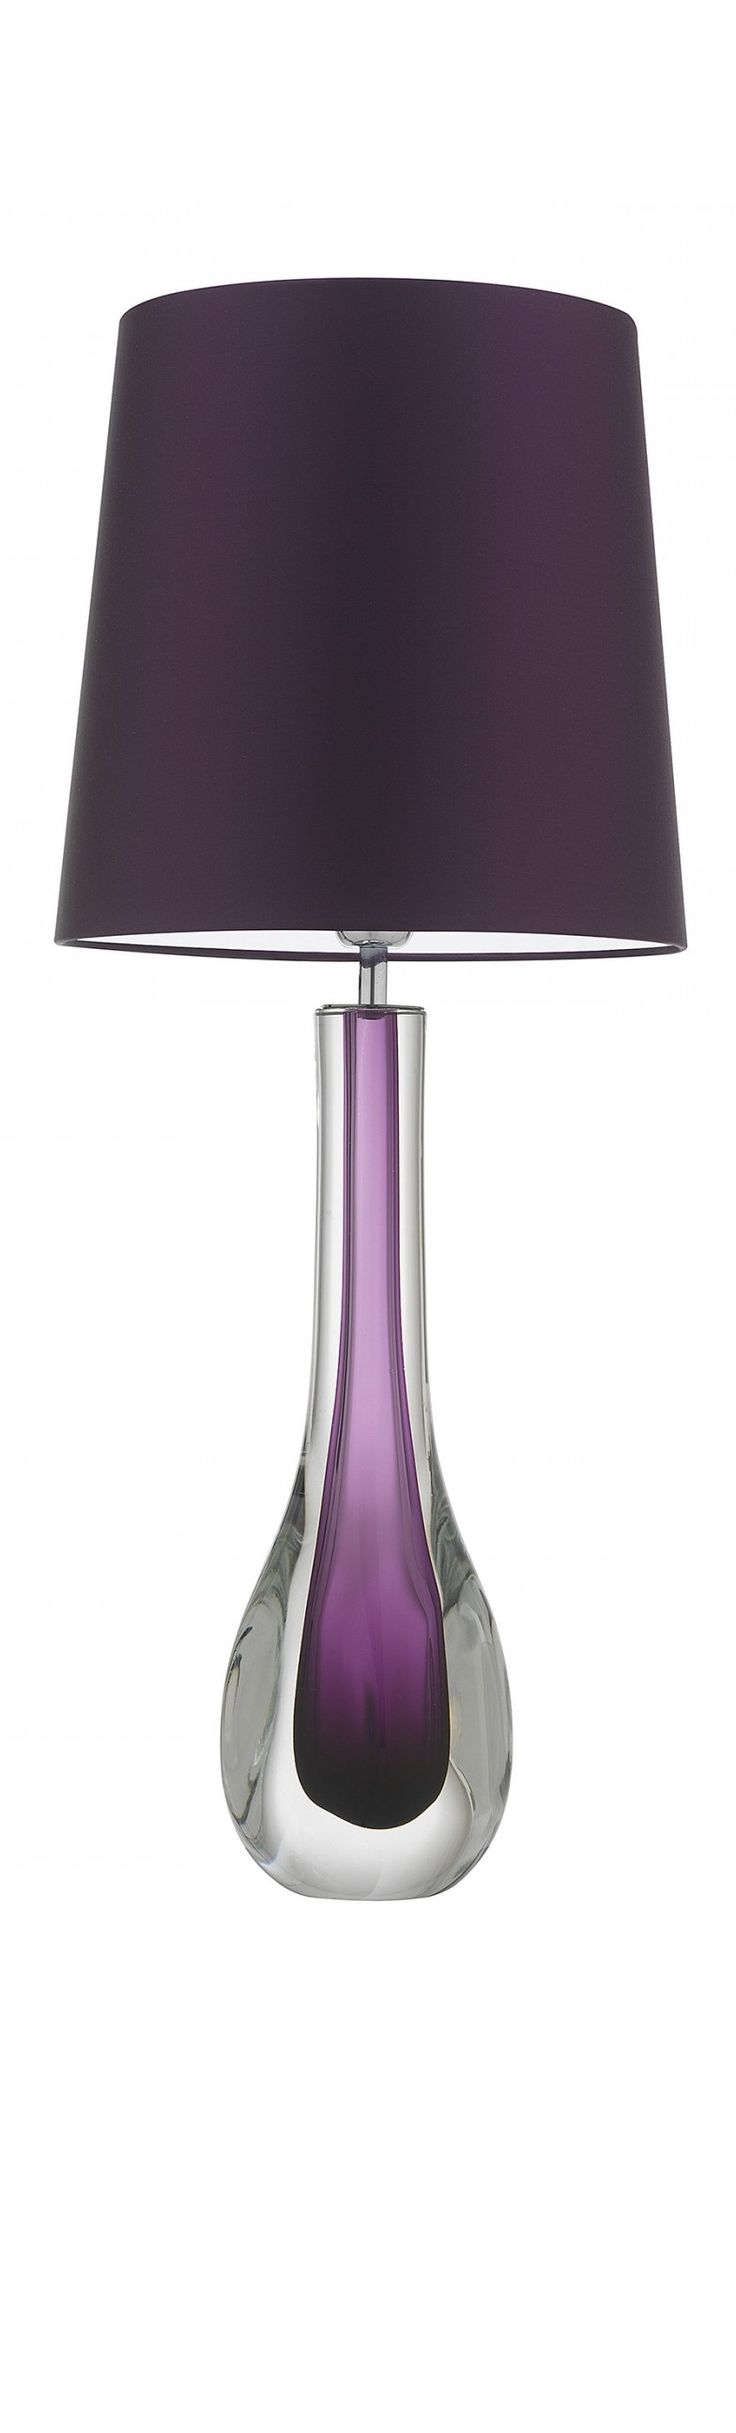 purple bedroom lamps best 20 purple lamp ideas on 12966